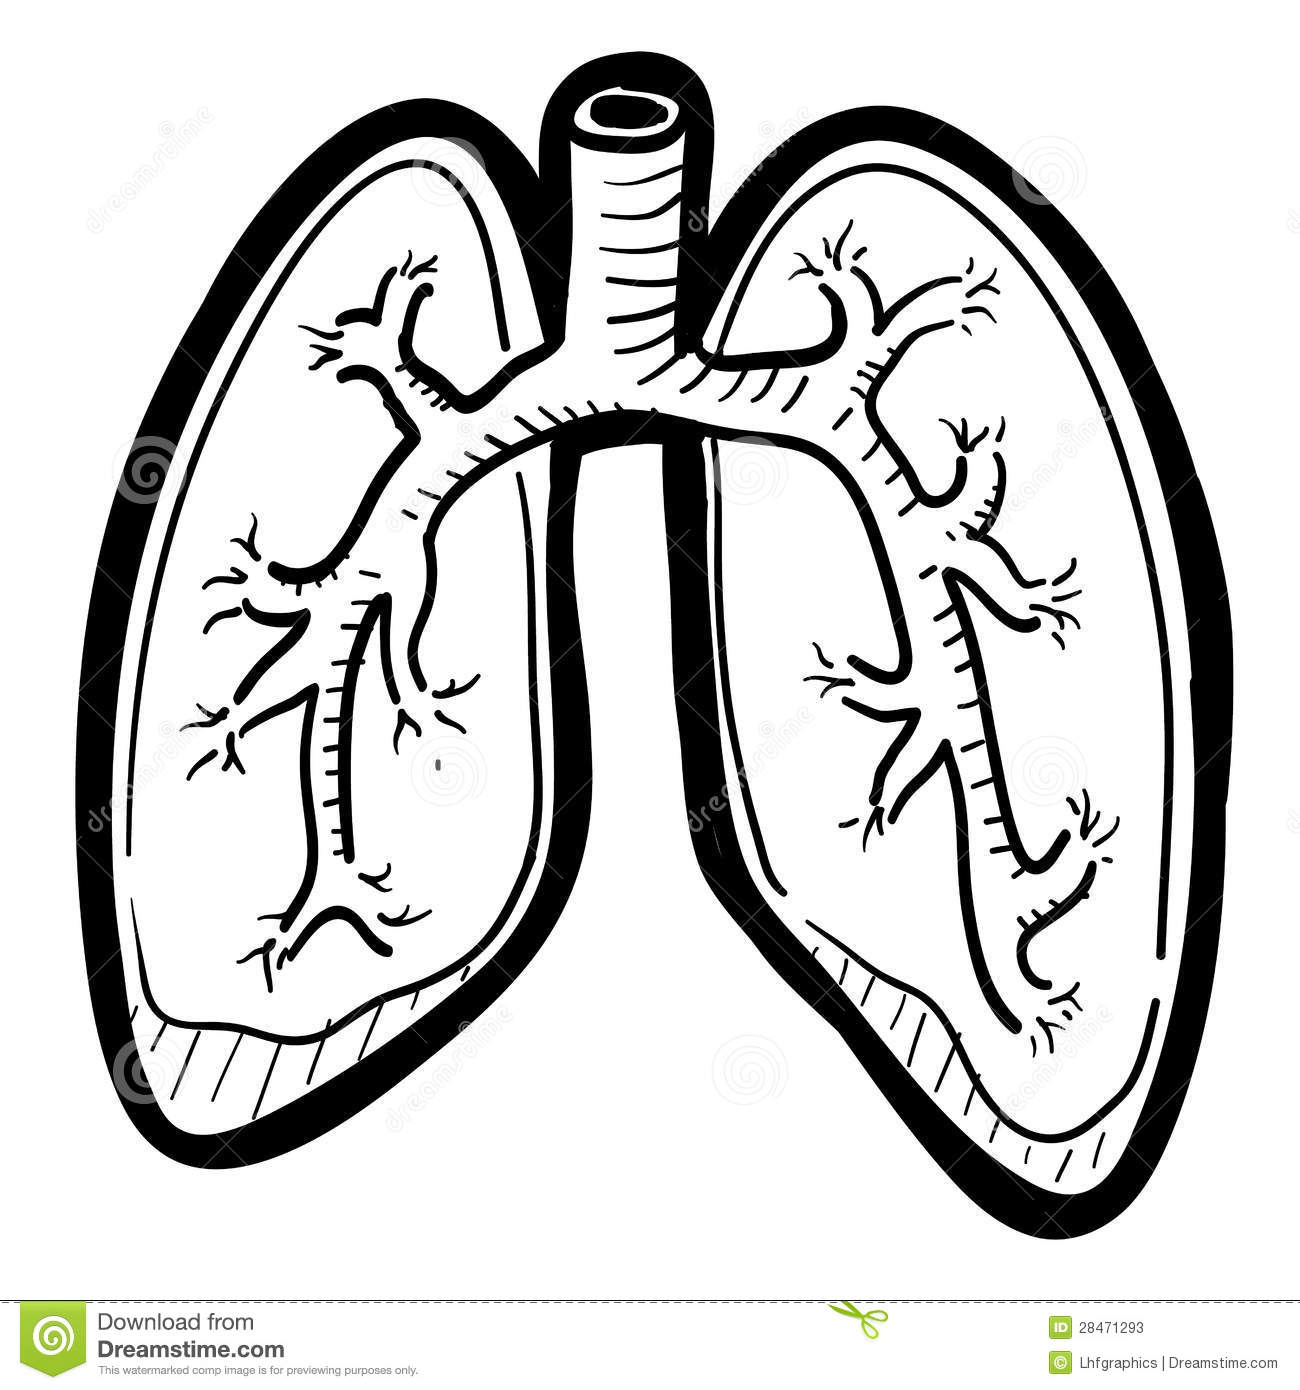 Human Lungs Sketch Stock Vector Illustration Of Body